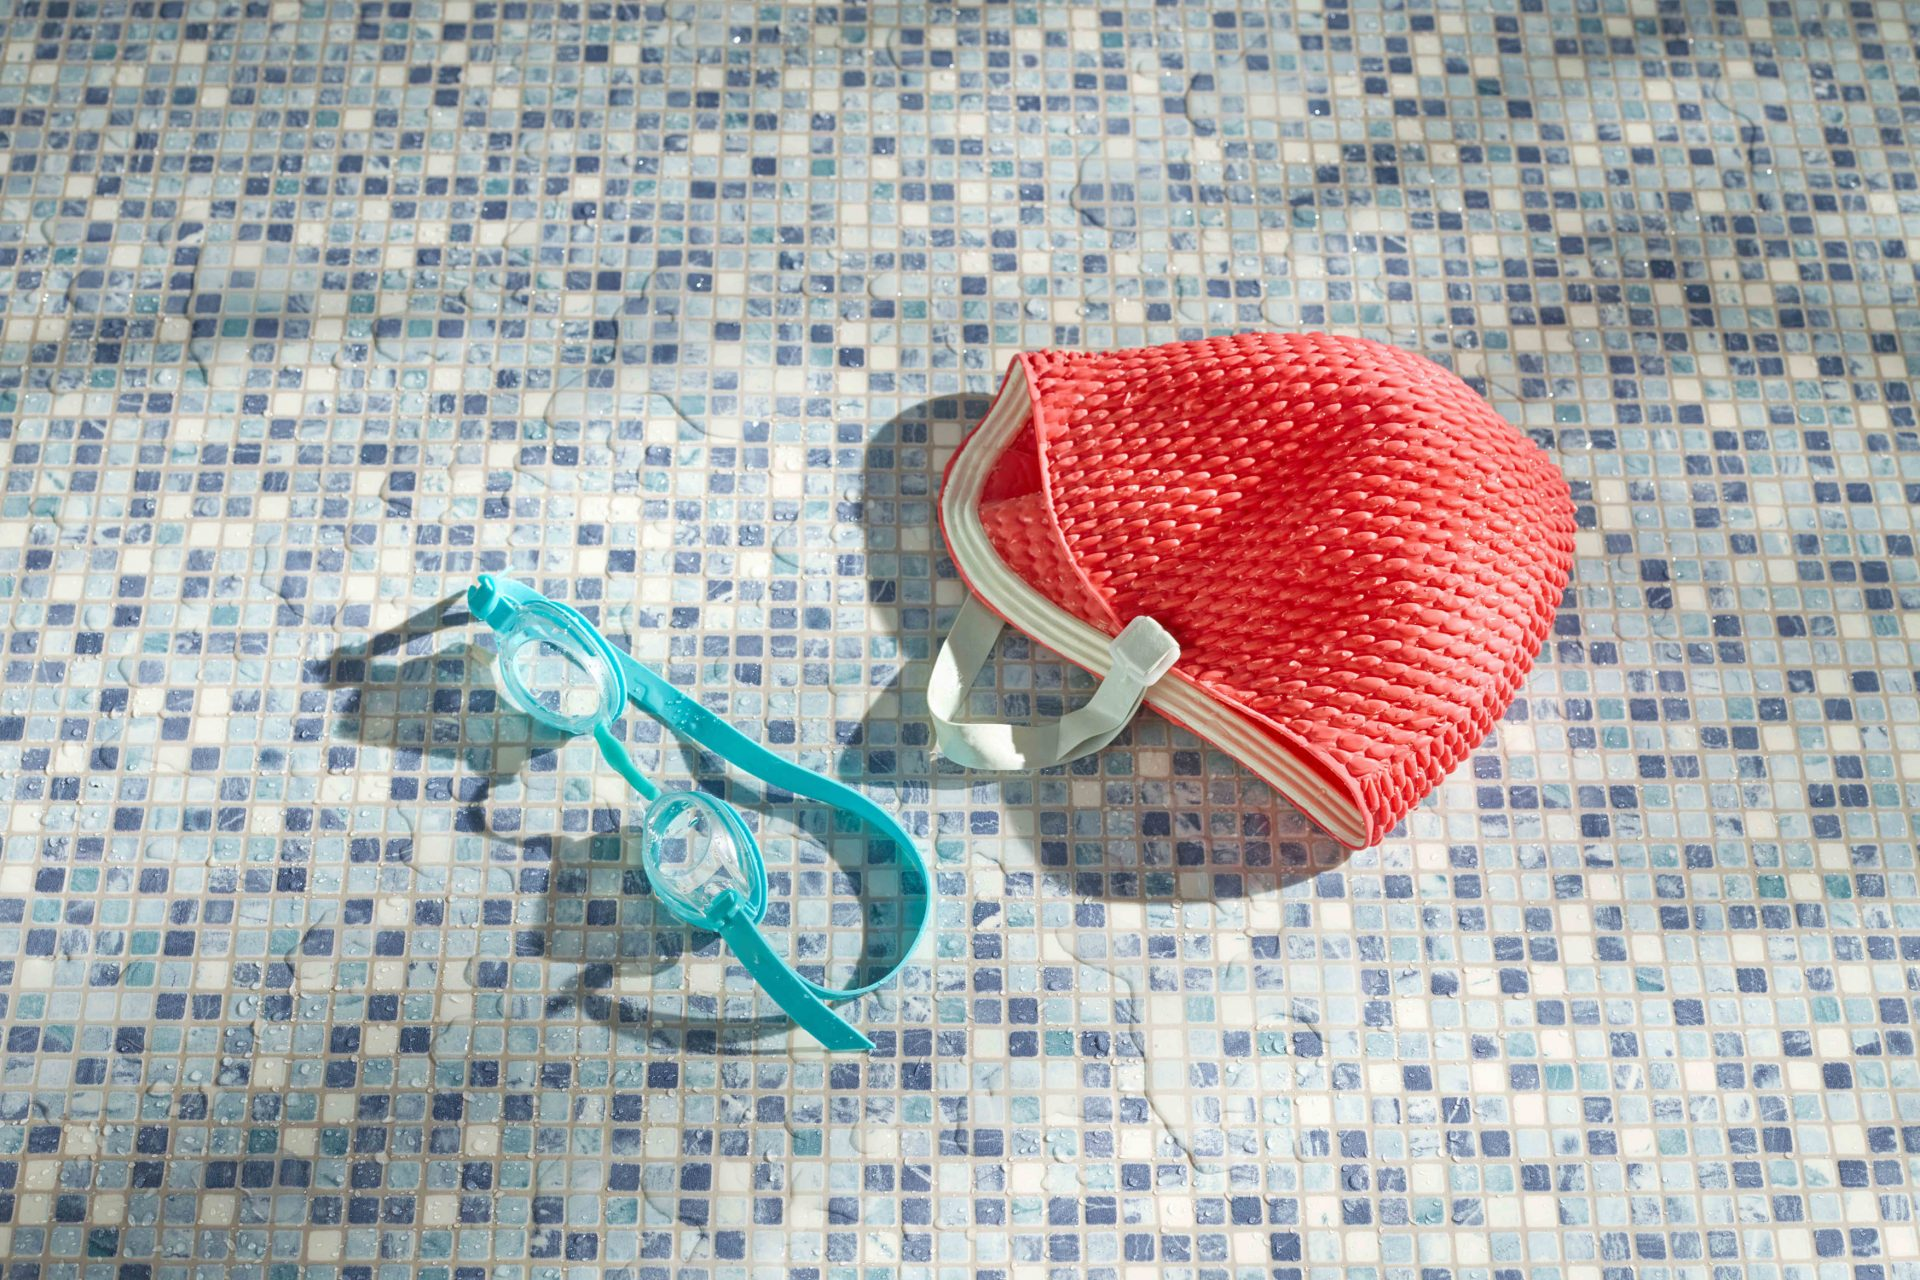 Shaw & Shaw – Swimming Cap and goggles in dappled light patterned lino – Shaw and Shaw Advertising photographers Manchester photographer – Shaw & Shaw Photography